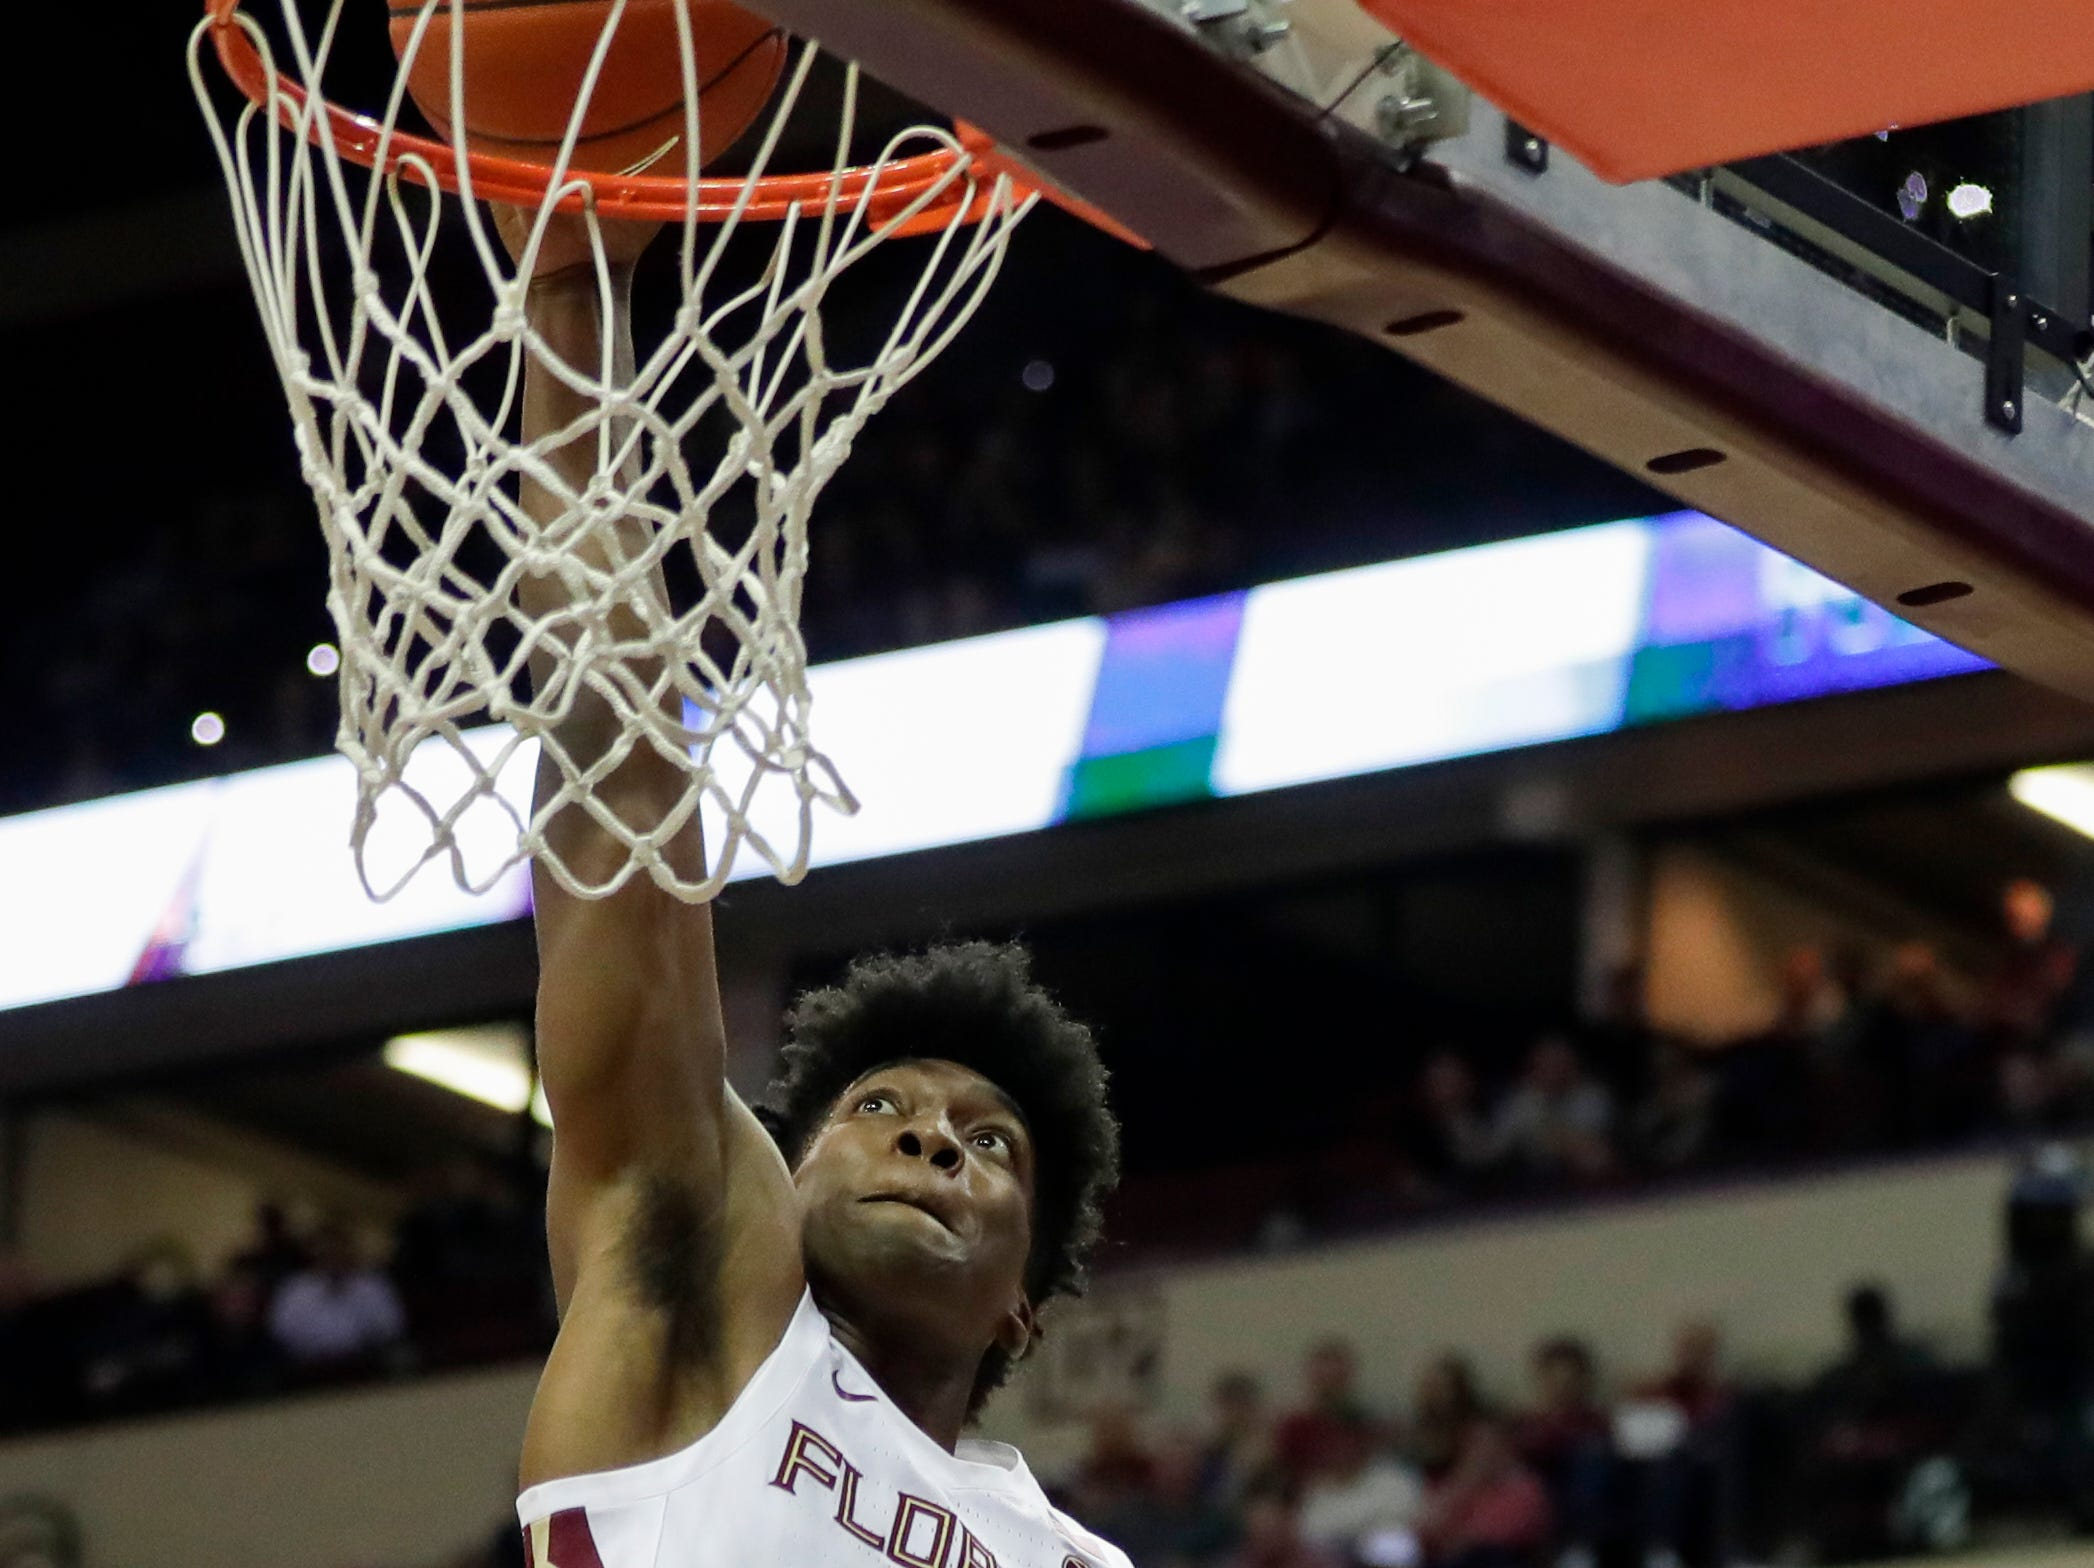 Florida State Seminoles guard Terance Mann (14) dunks during a game between FSU and Notre Dame at the Donald L. Tucker Civic Center Monday, Feb. 25, 2019.